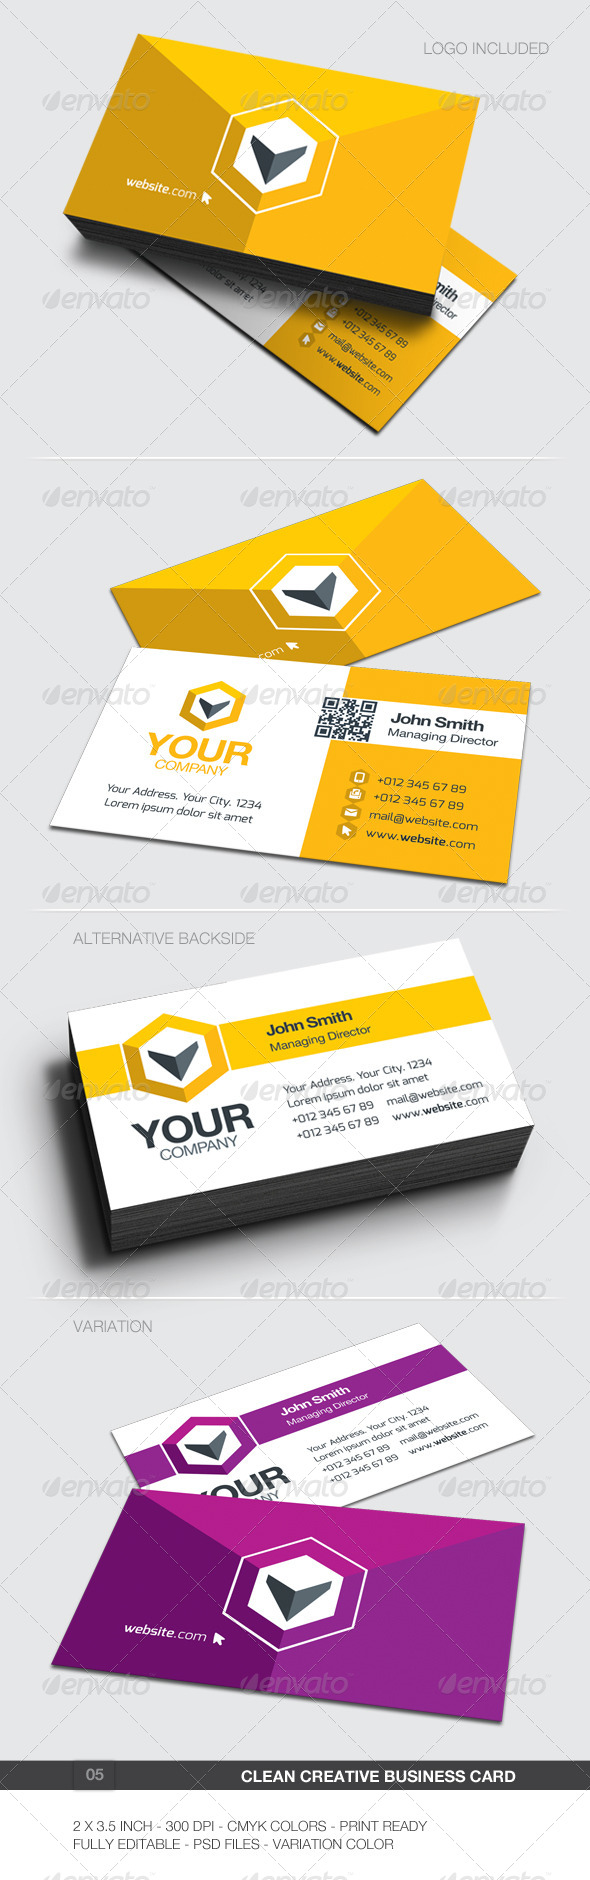 Clean Creative Business Card - 05 - Creative Business Cards